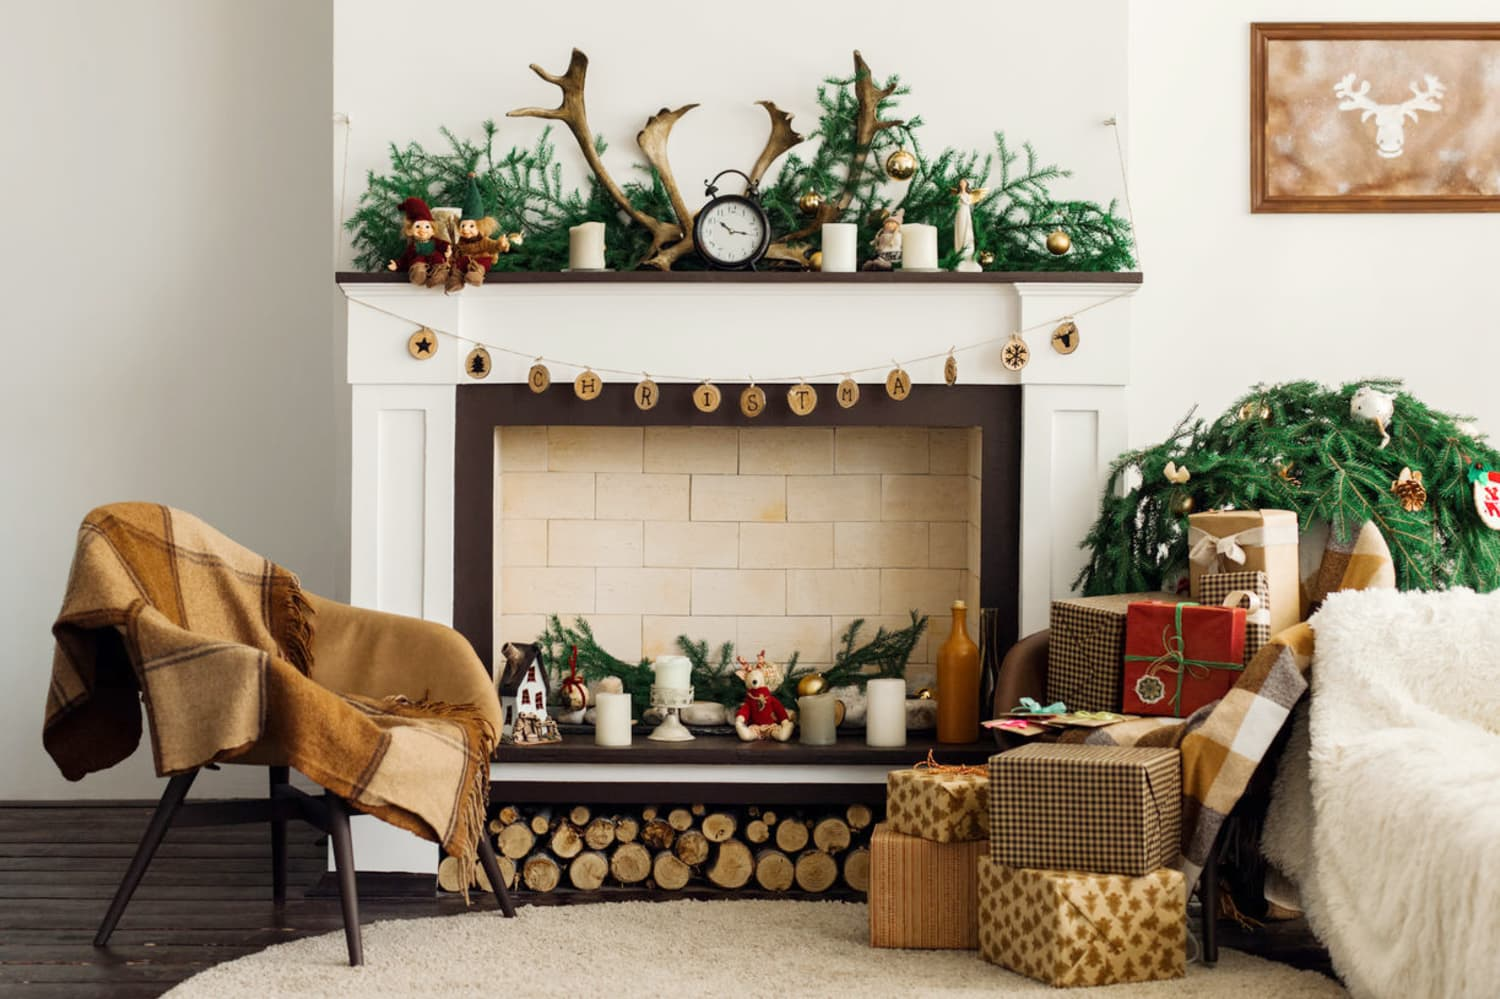 The 50 Best Home Gift Ideas